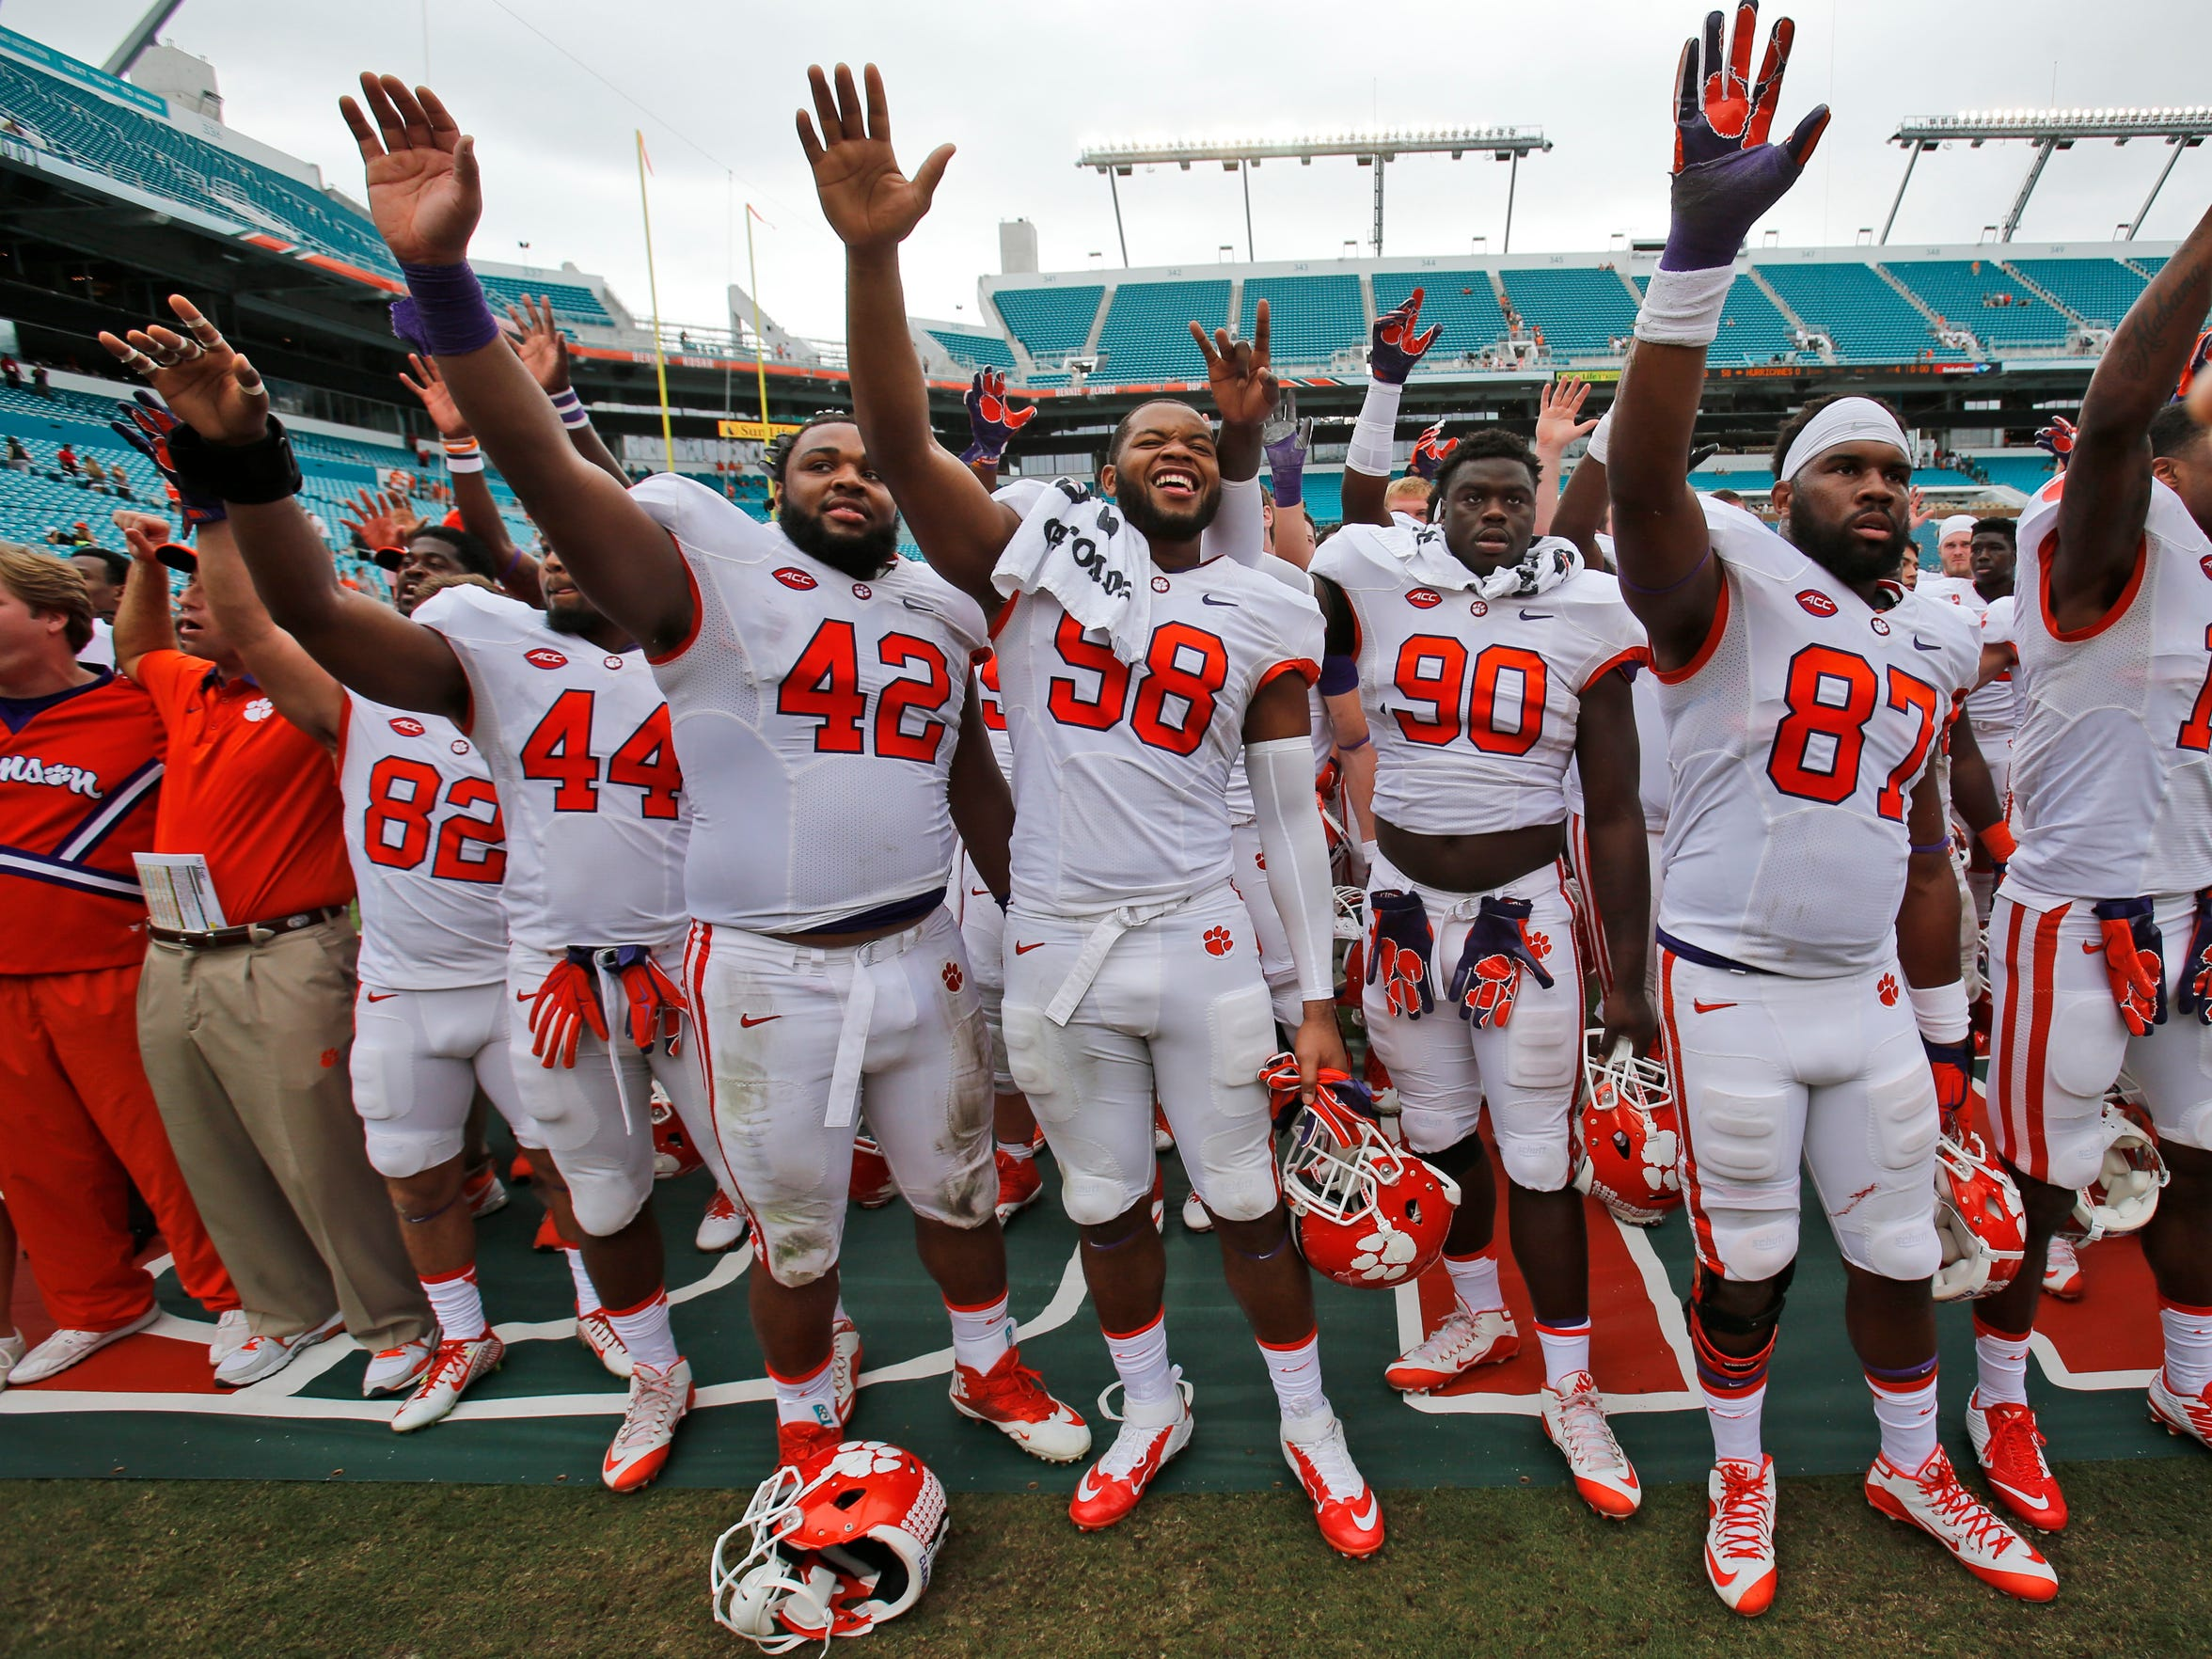 Clemson players celebrate after their 58-0 win over Miami in a game on Saturday.